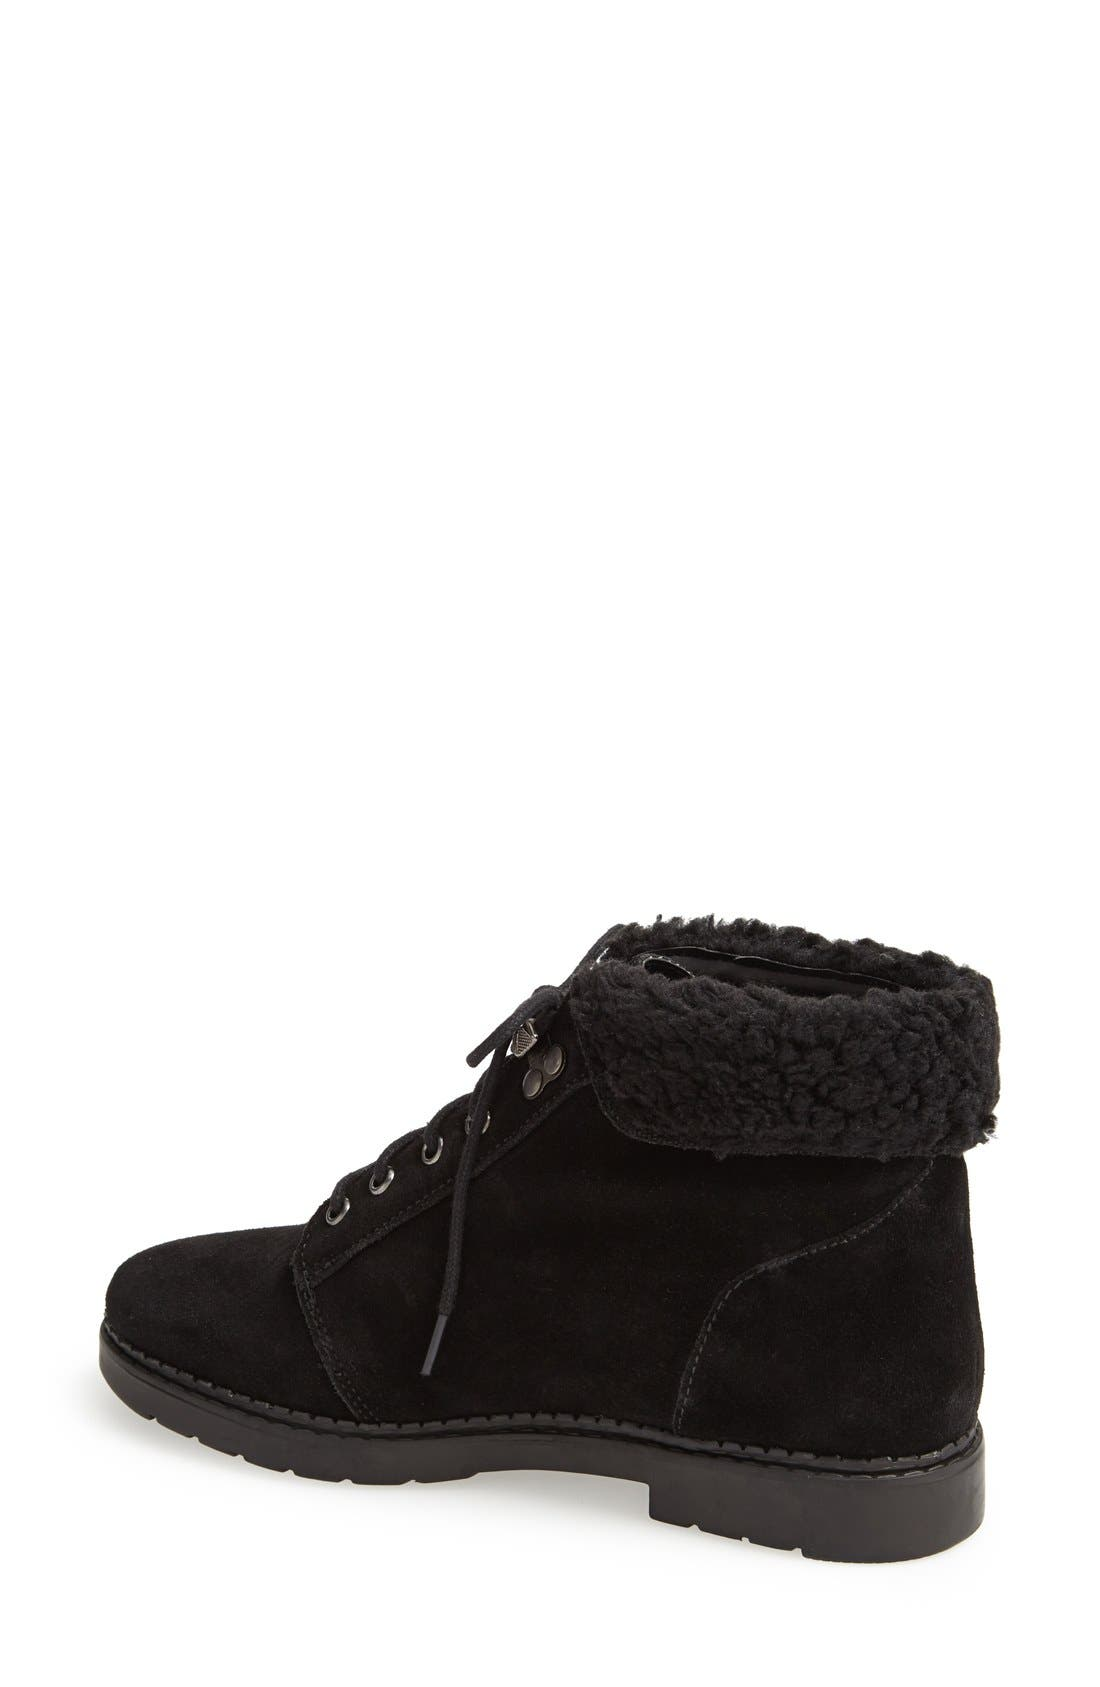 Alternate Image 2  - Topshop 'Brody' Suede Ankle Boot (Women)